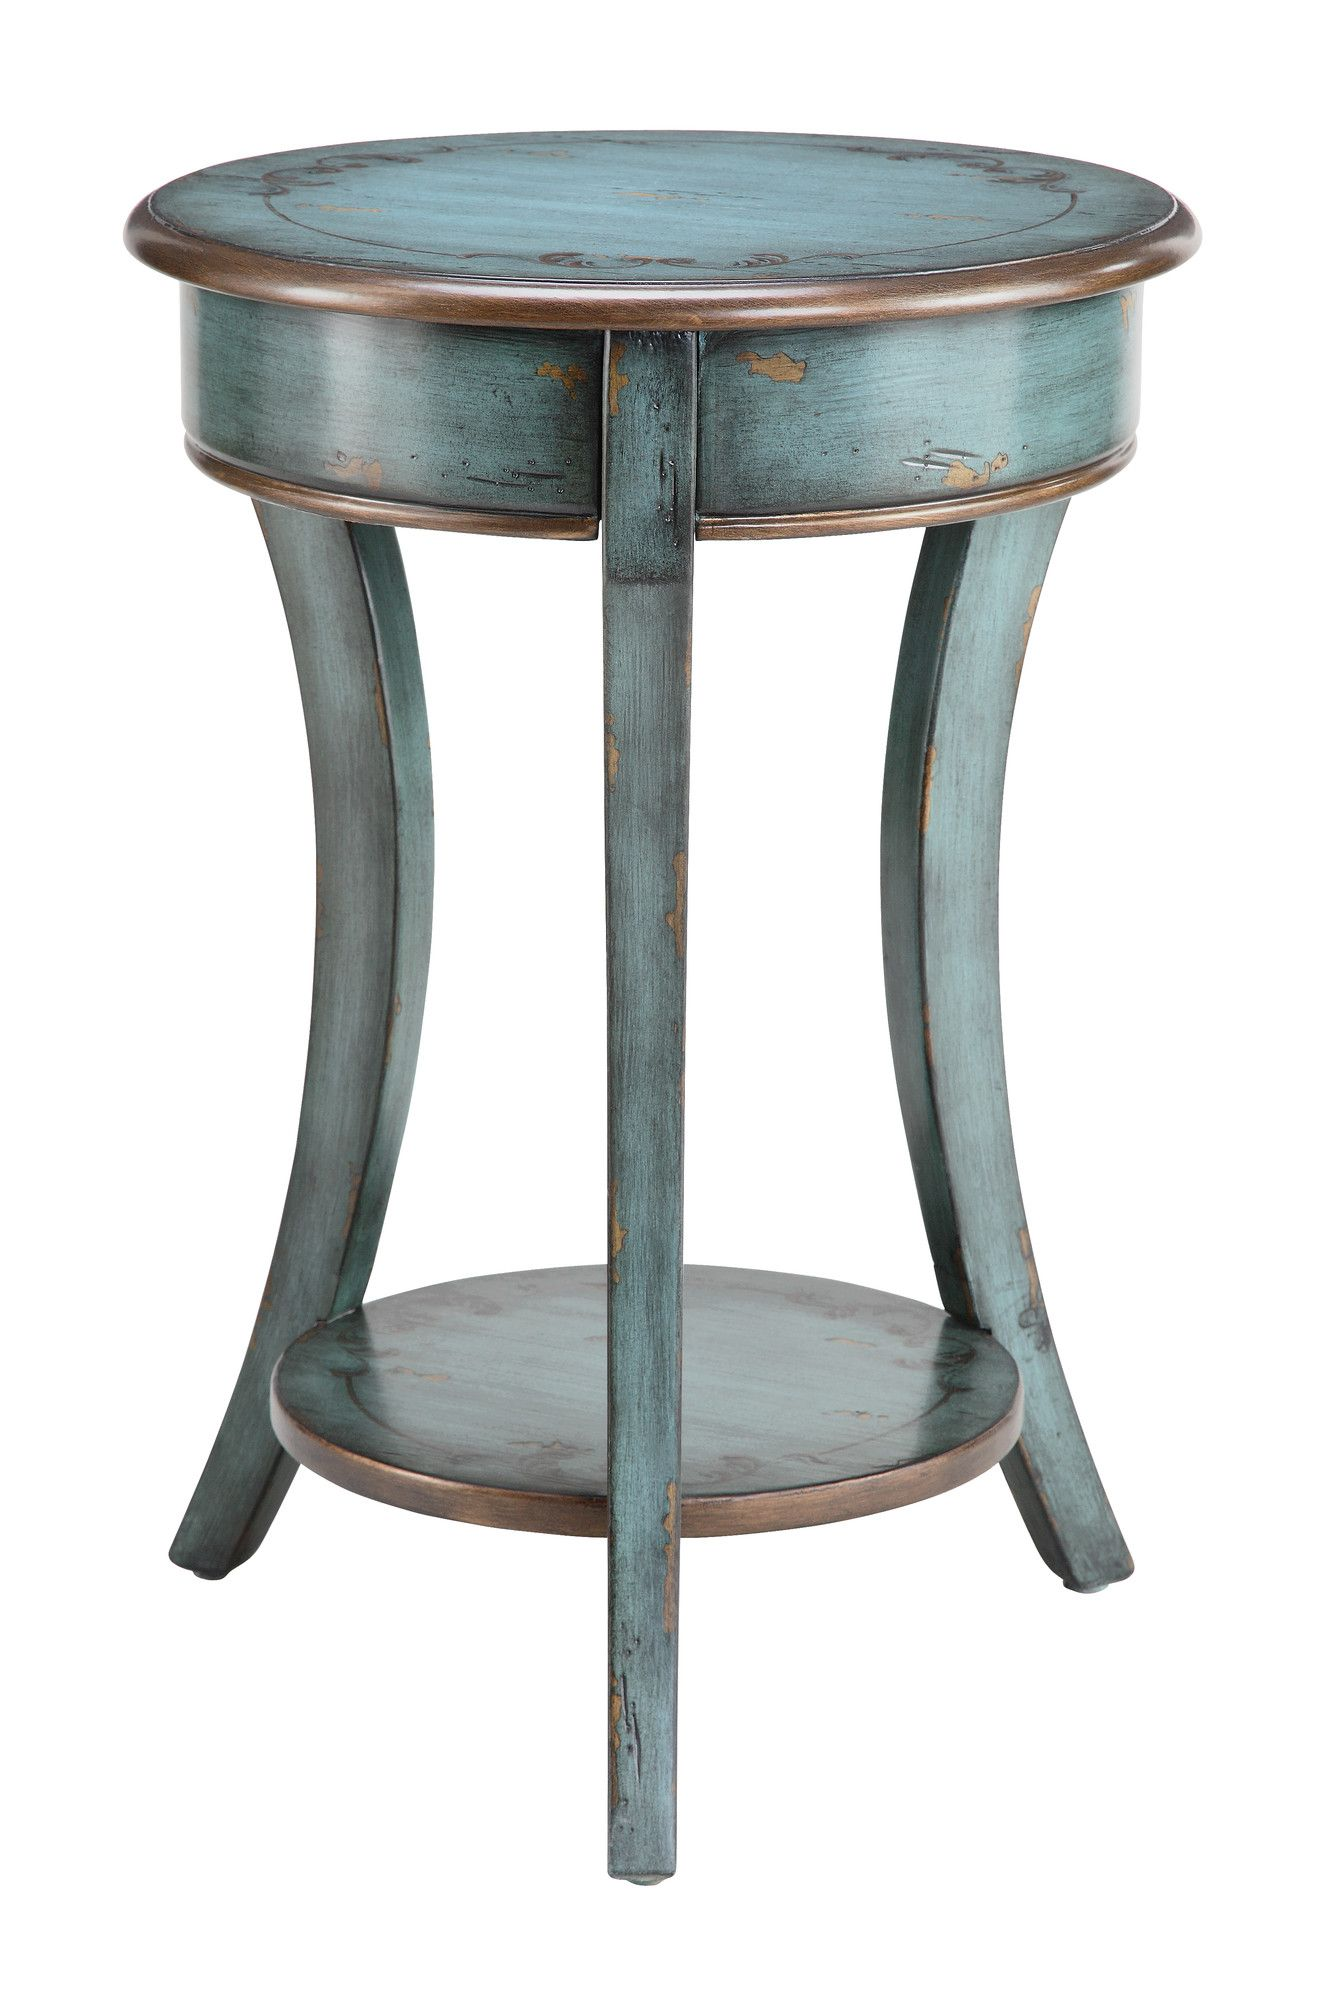 stein world painted treasures end table bronzed and distressed paint small accent tables furniture job round antique mirage mirrored cabinet mersman vita lampen ethan allen